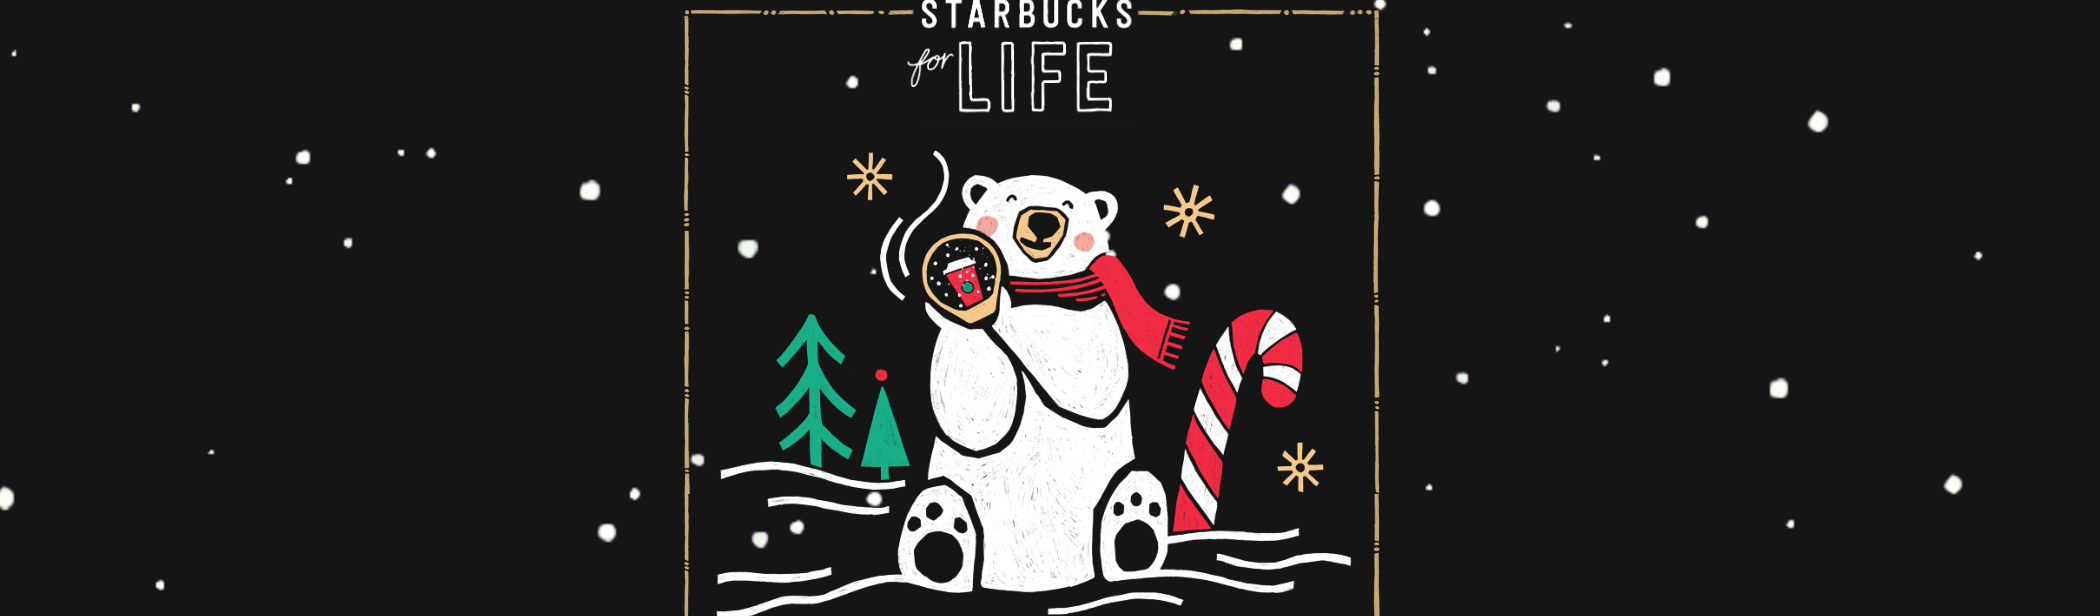 Starbucks For Life Rare Pieces 2018 Holiday Edition